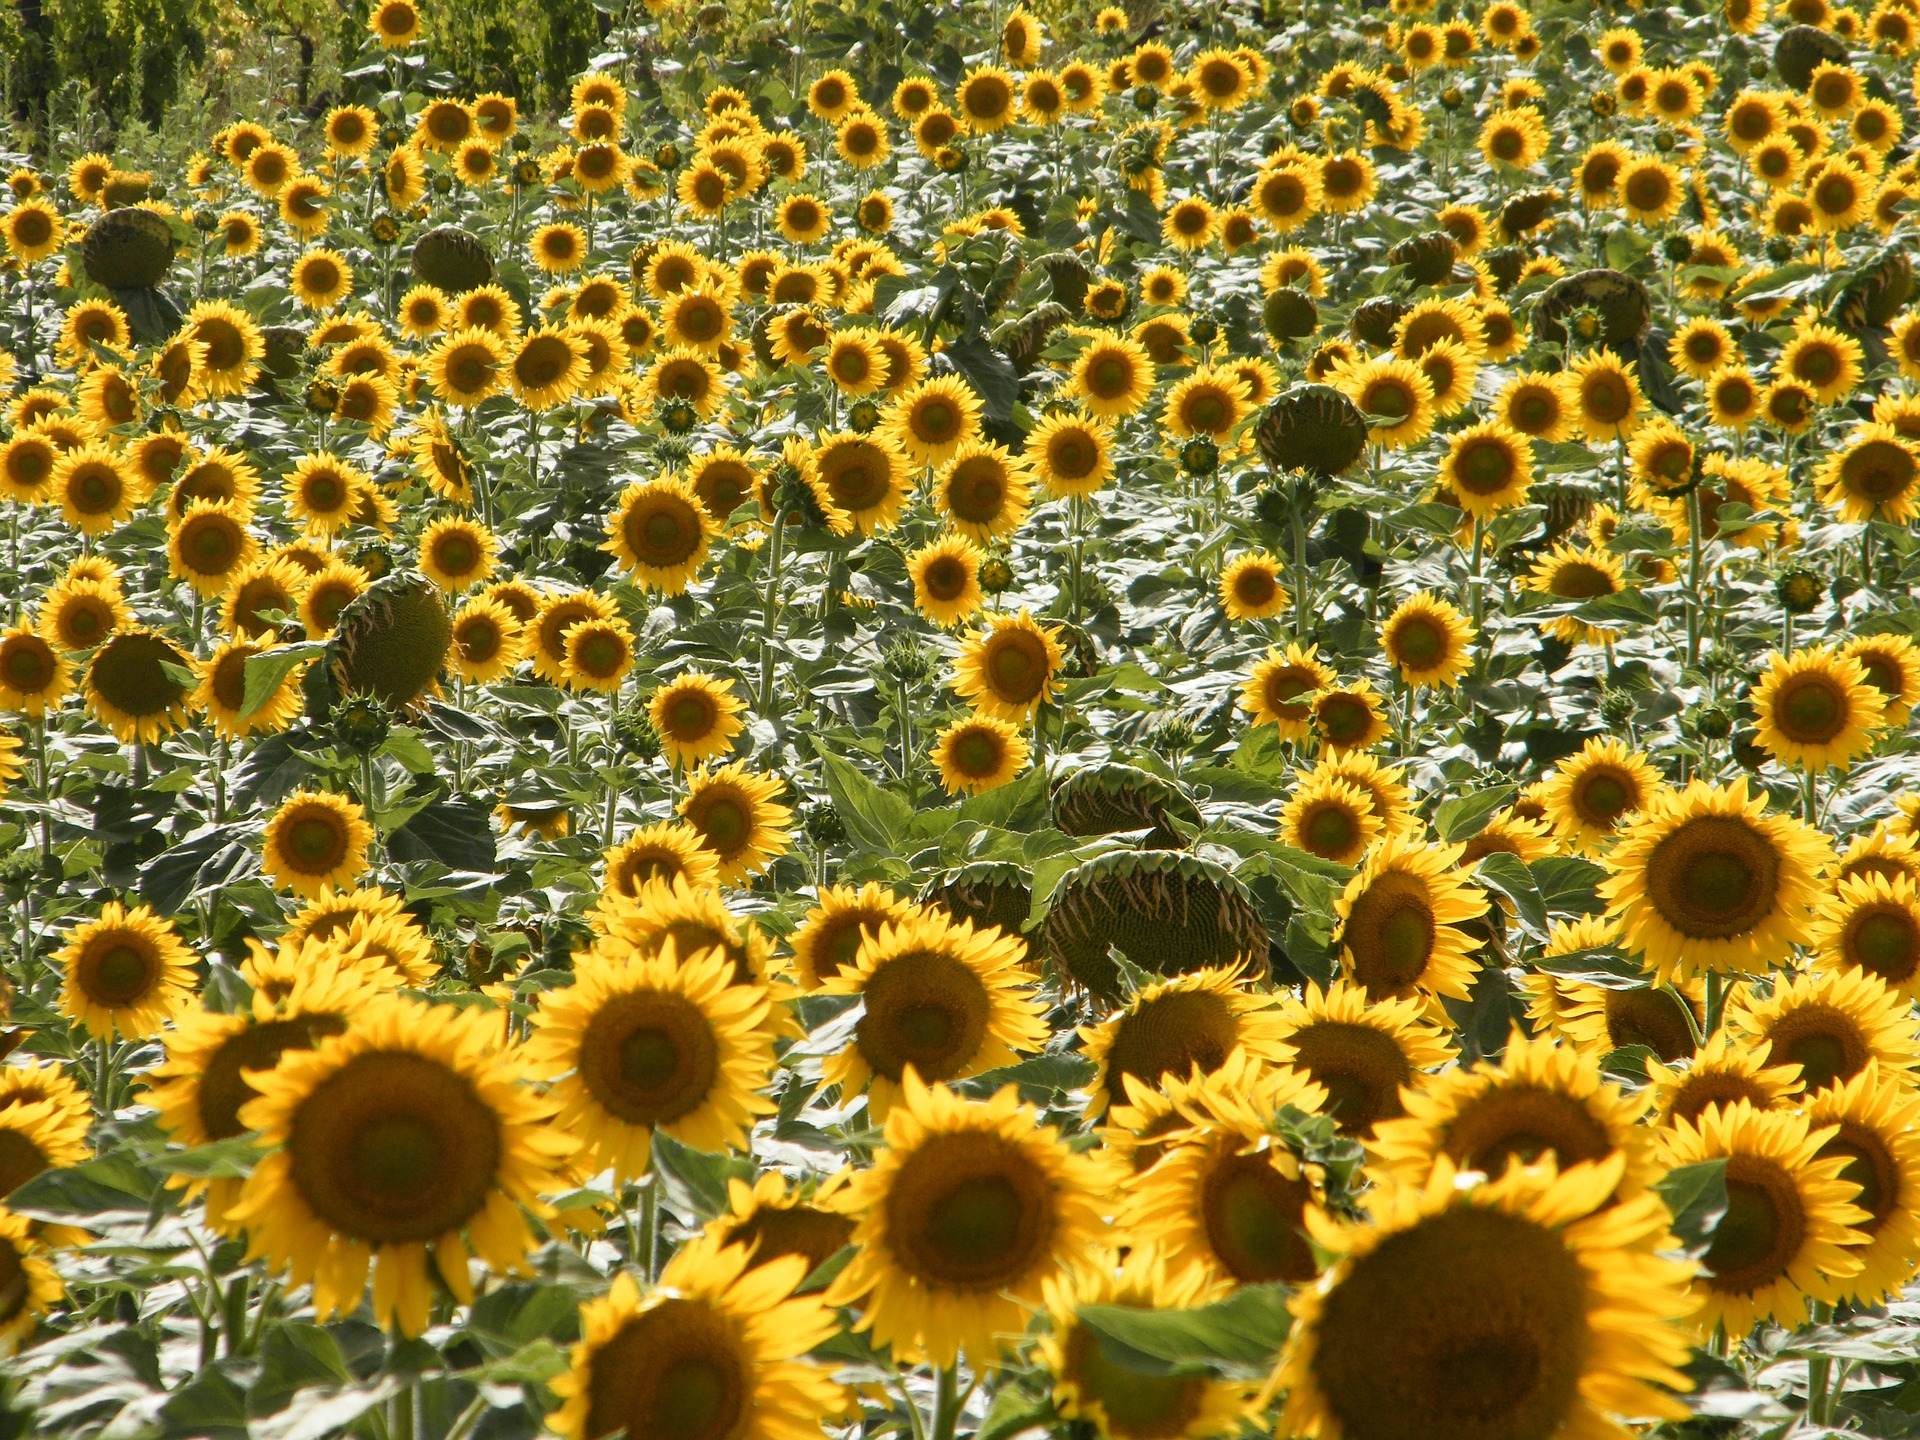 sunflowers-969833_1920